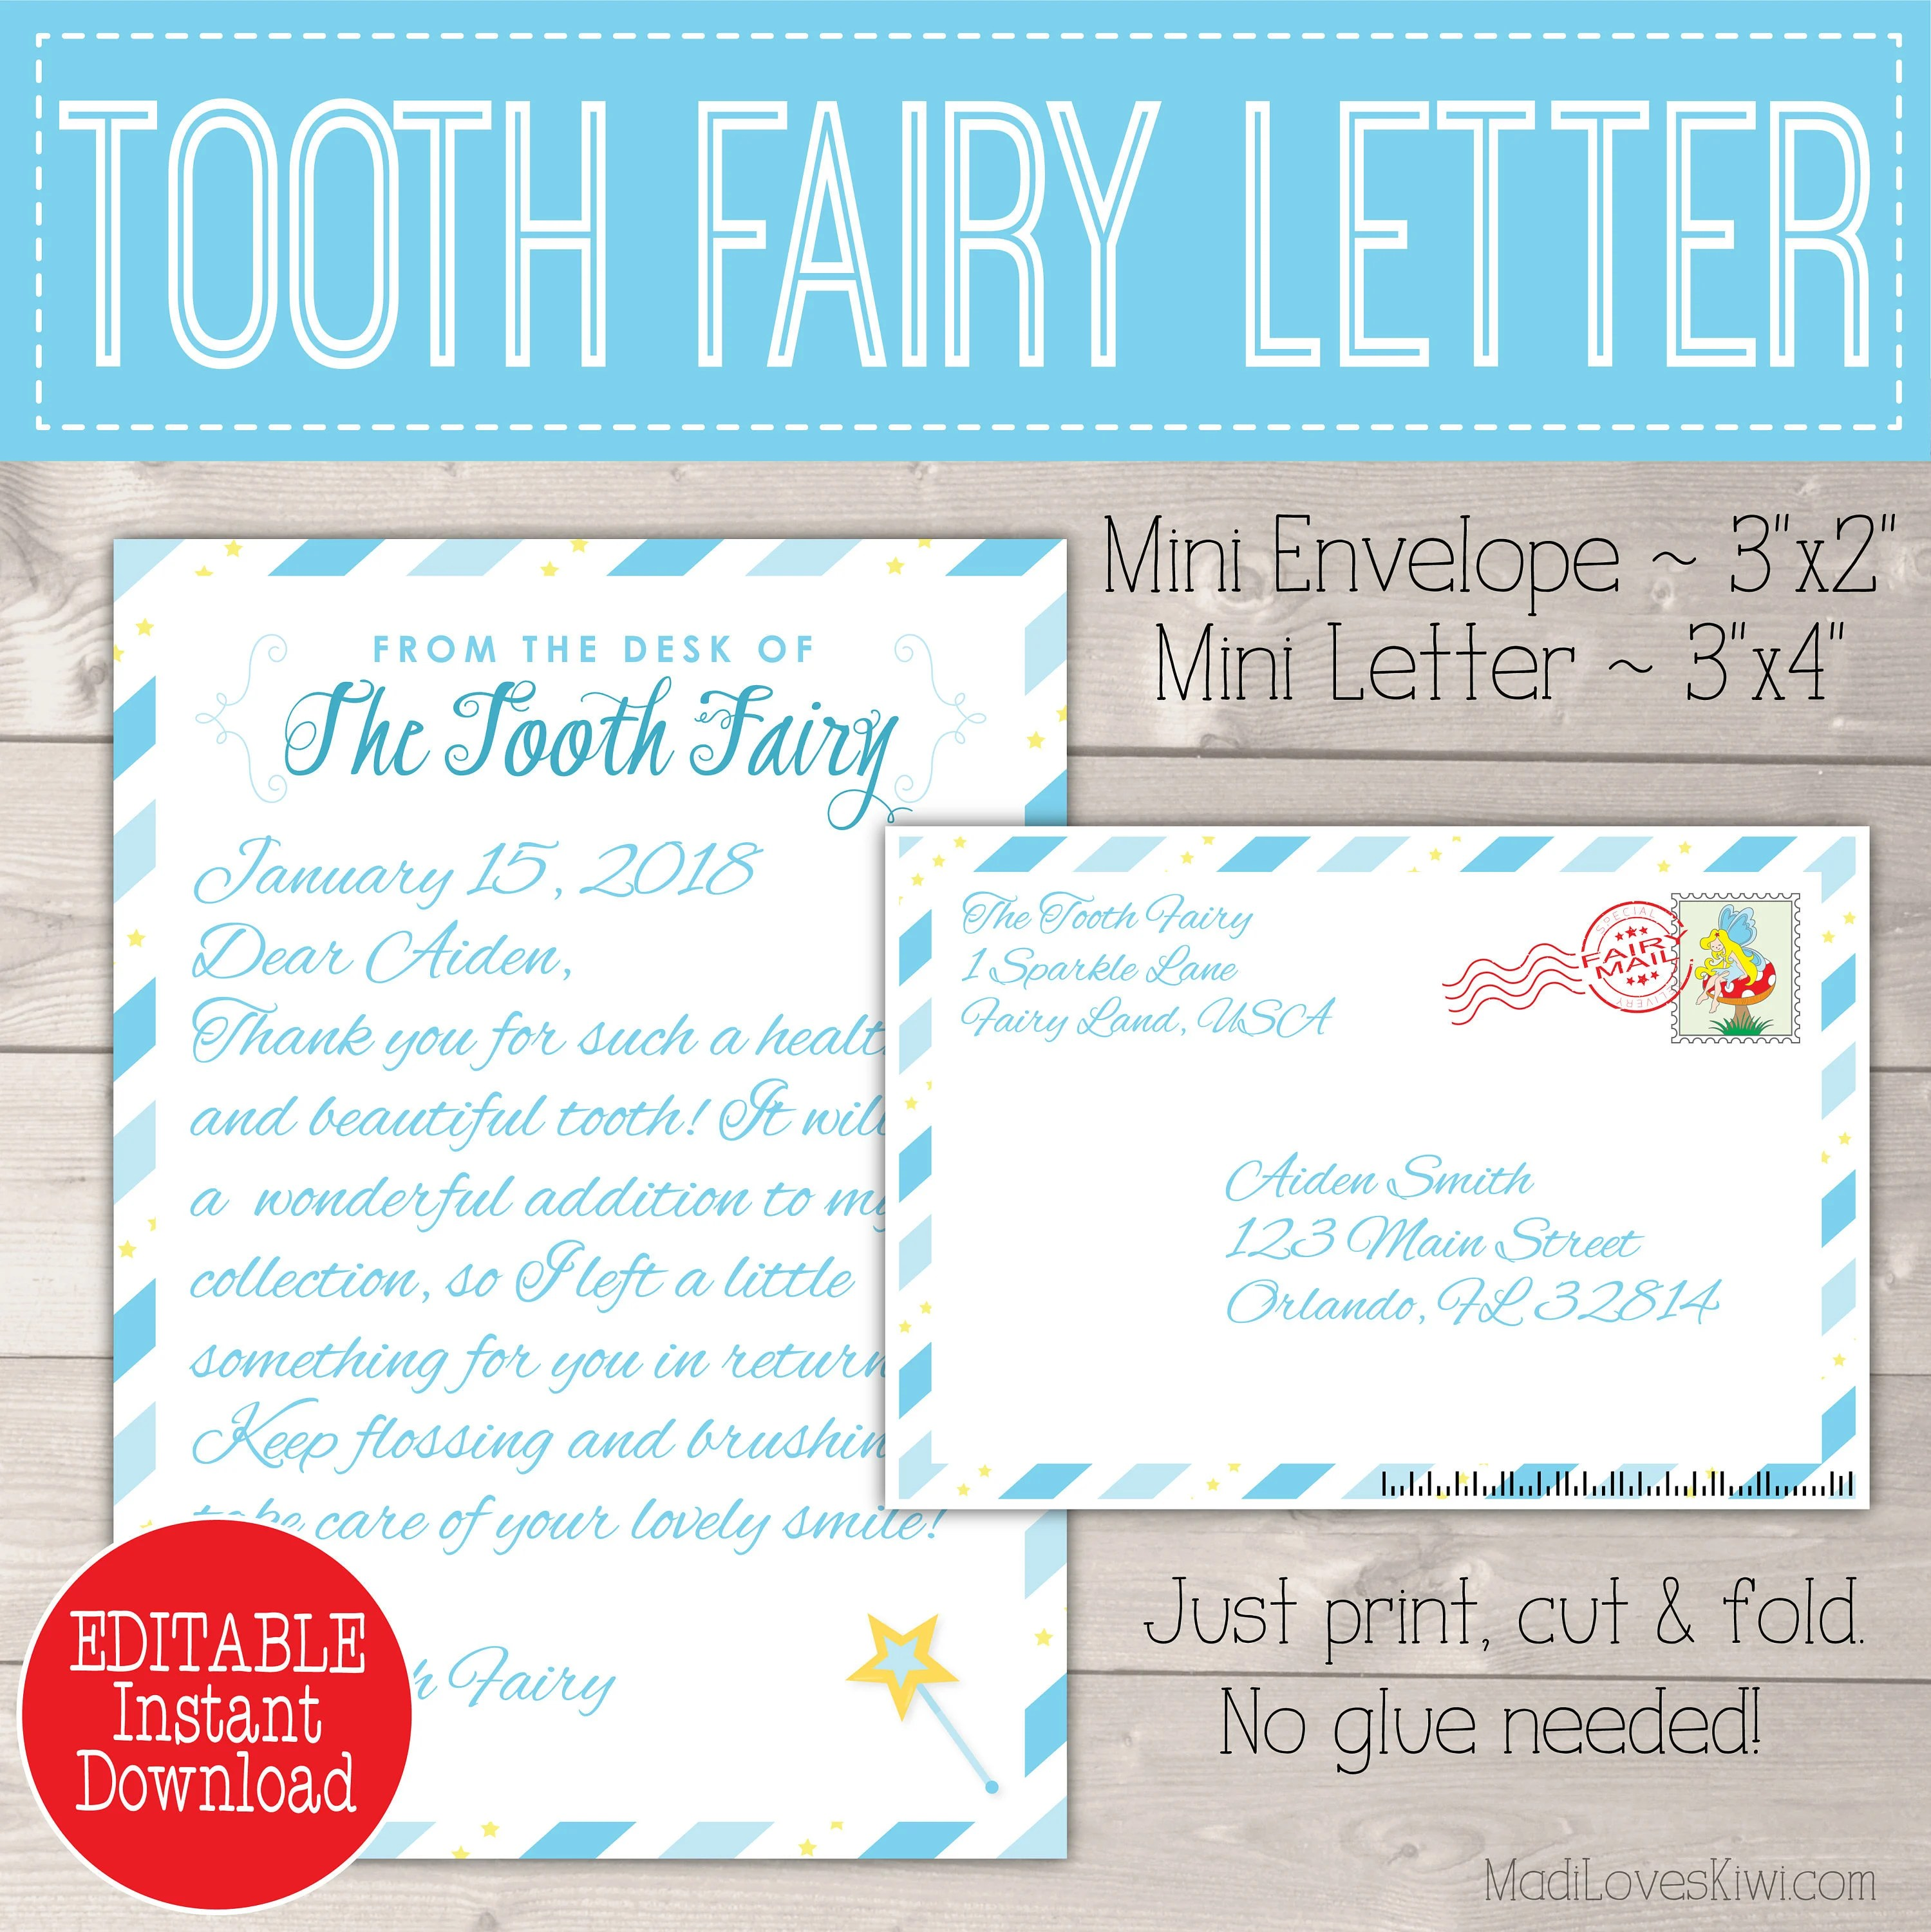 Personalized Tooth Fairy Letter Kit Boy Printable Download Etsy